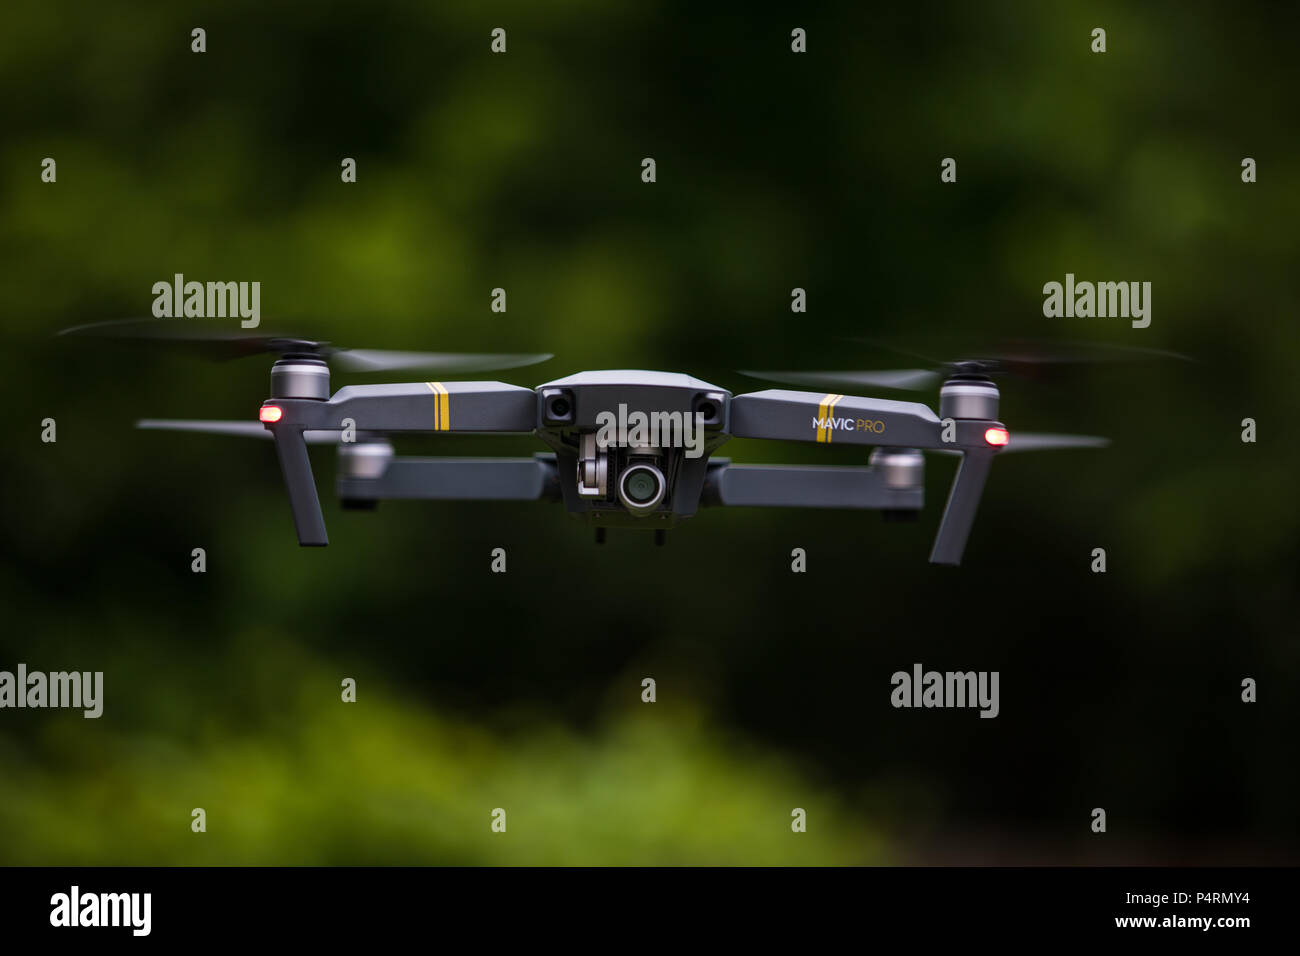 DJI Mavic Pro Stock Photo